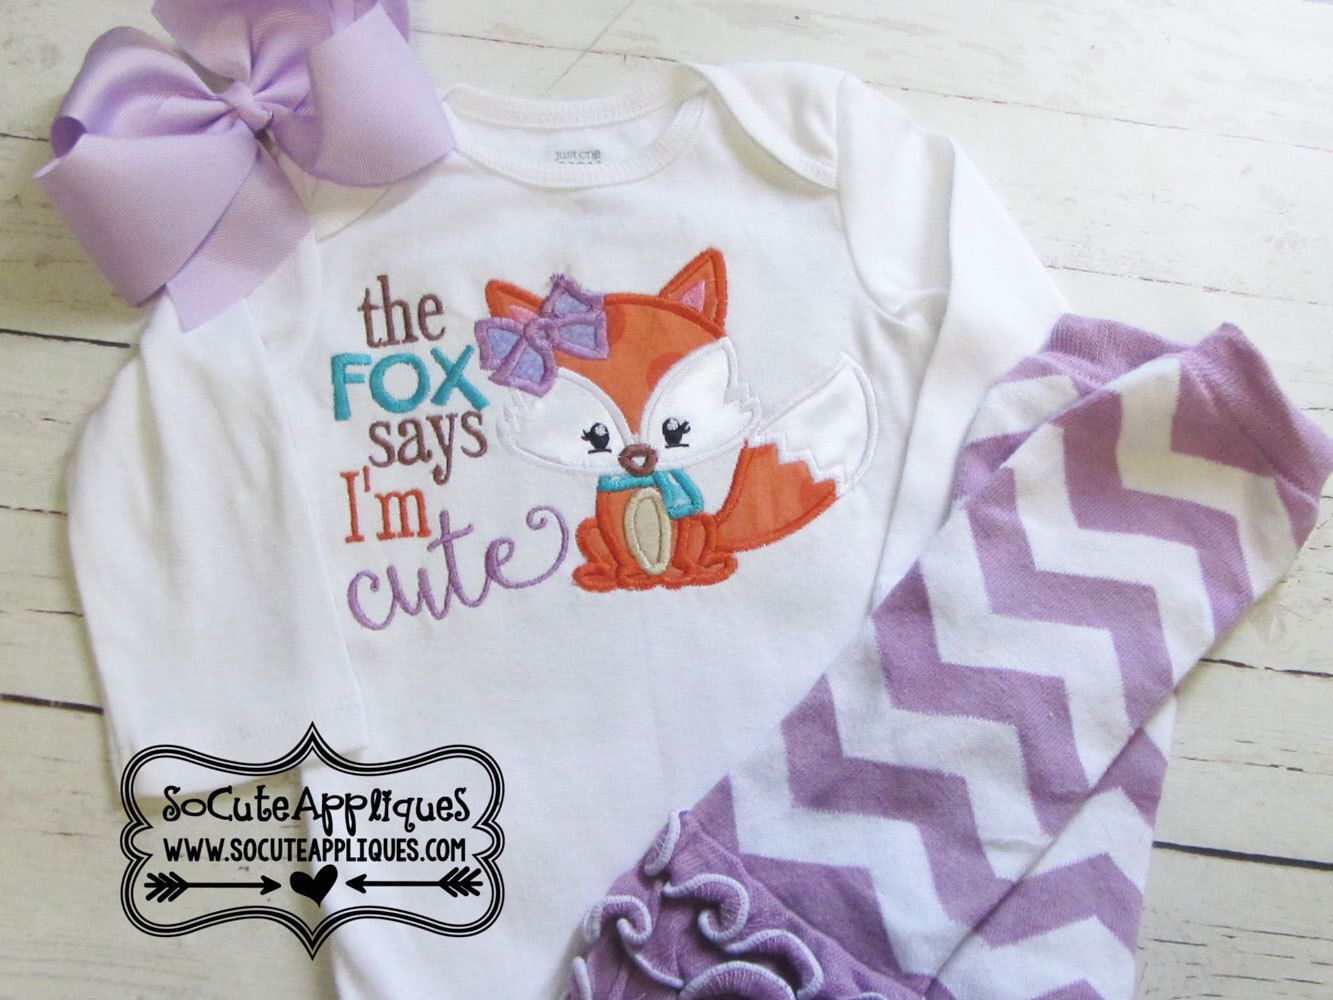 Embroidery design 5X7 6x10 The fox says I'm cute applique, Fall embroidery, Embroidery saying, fall applique, socuteappliques, foxy girl by SoCuteAppliques on Etsy https://www.etsy.com/transaction/1112359716